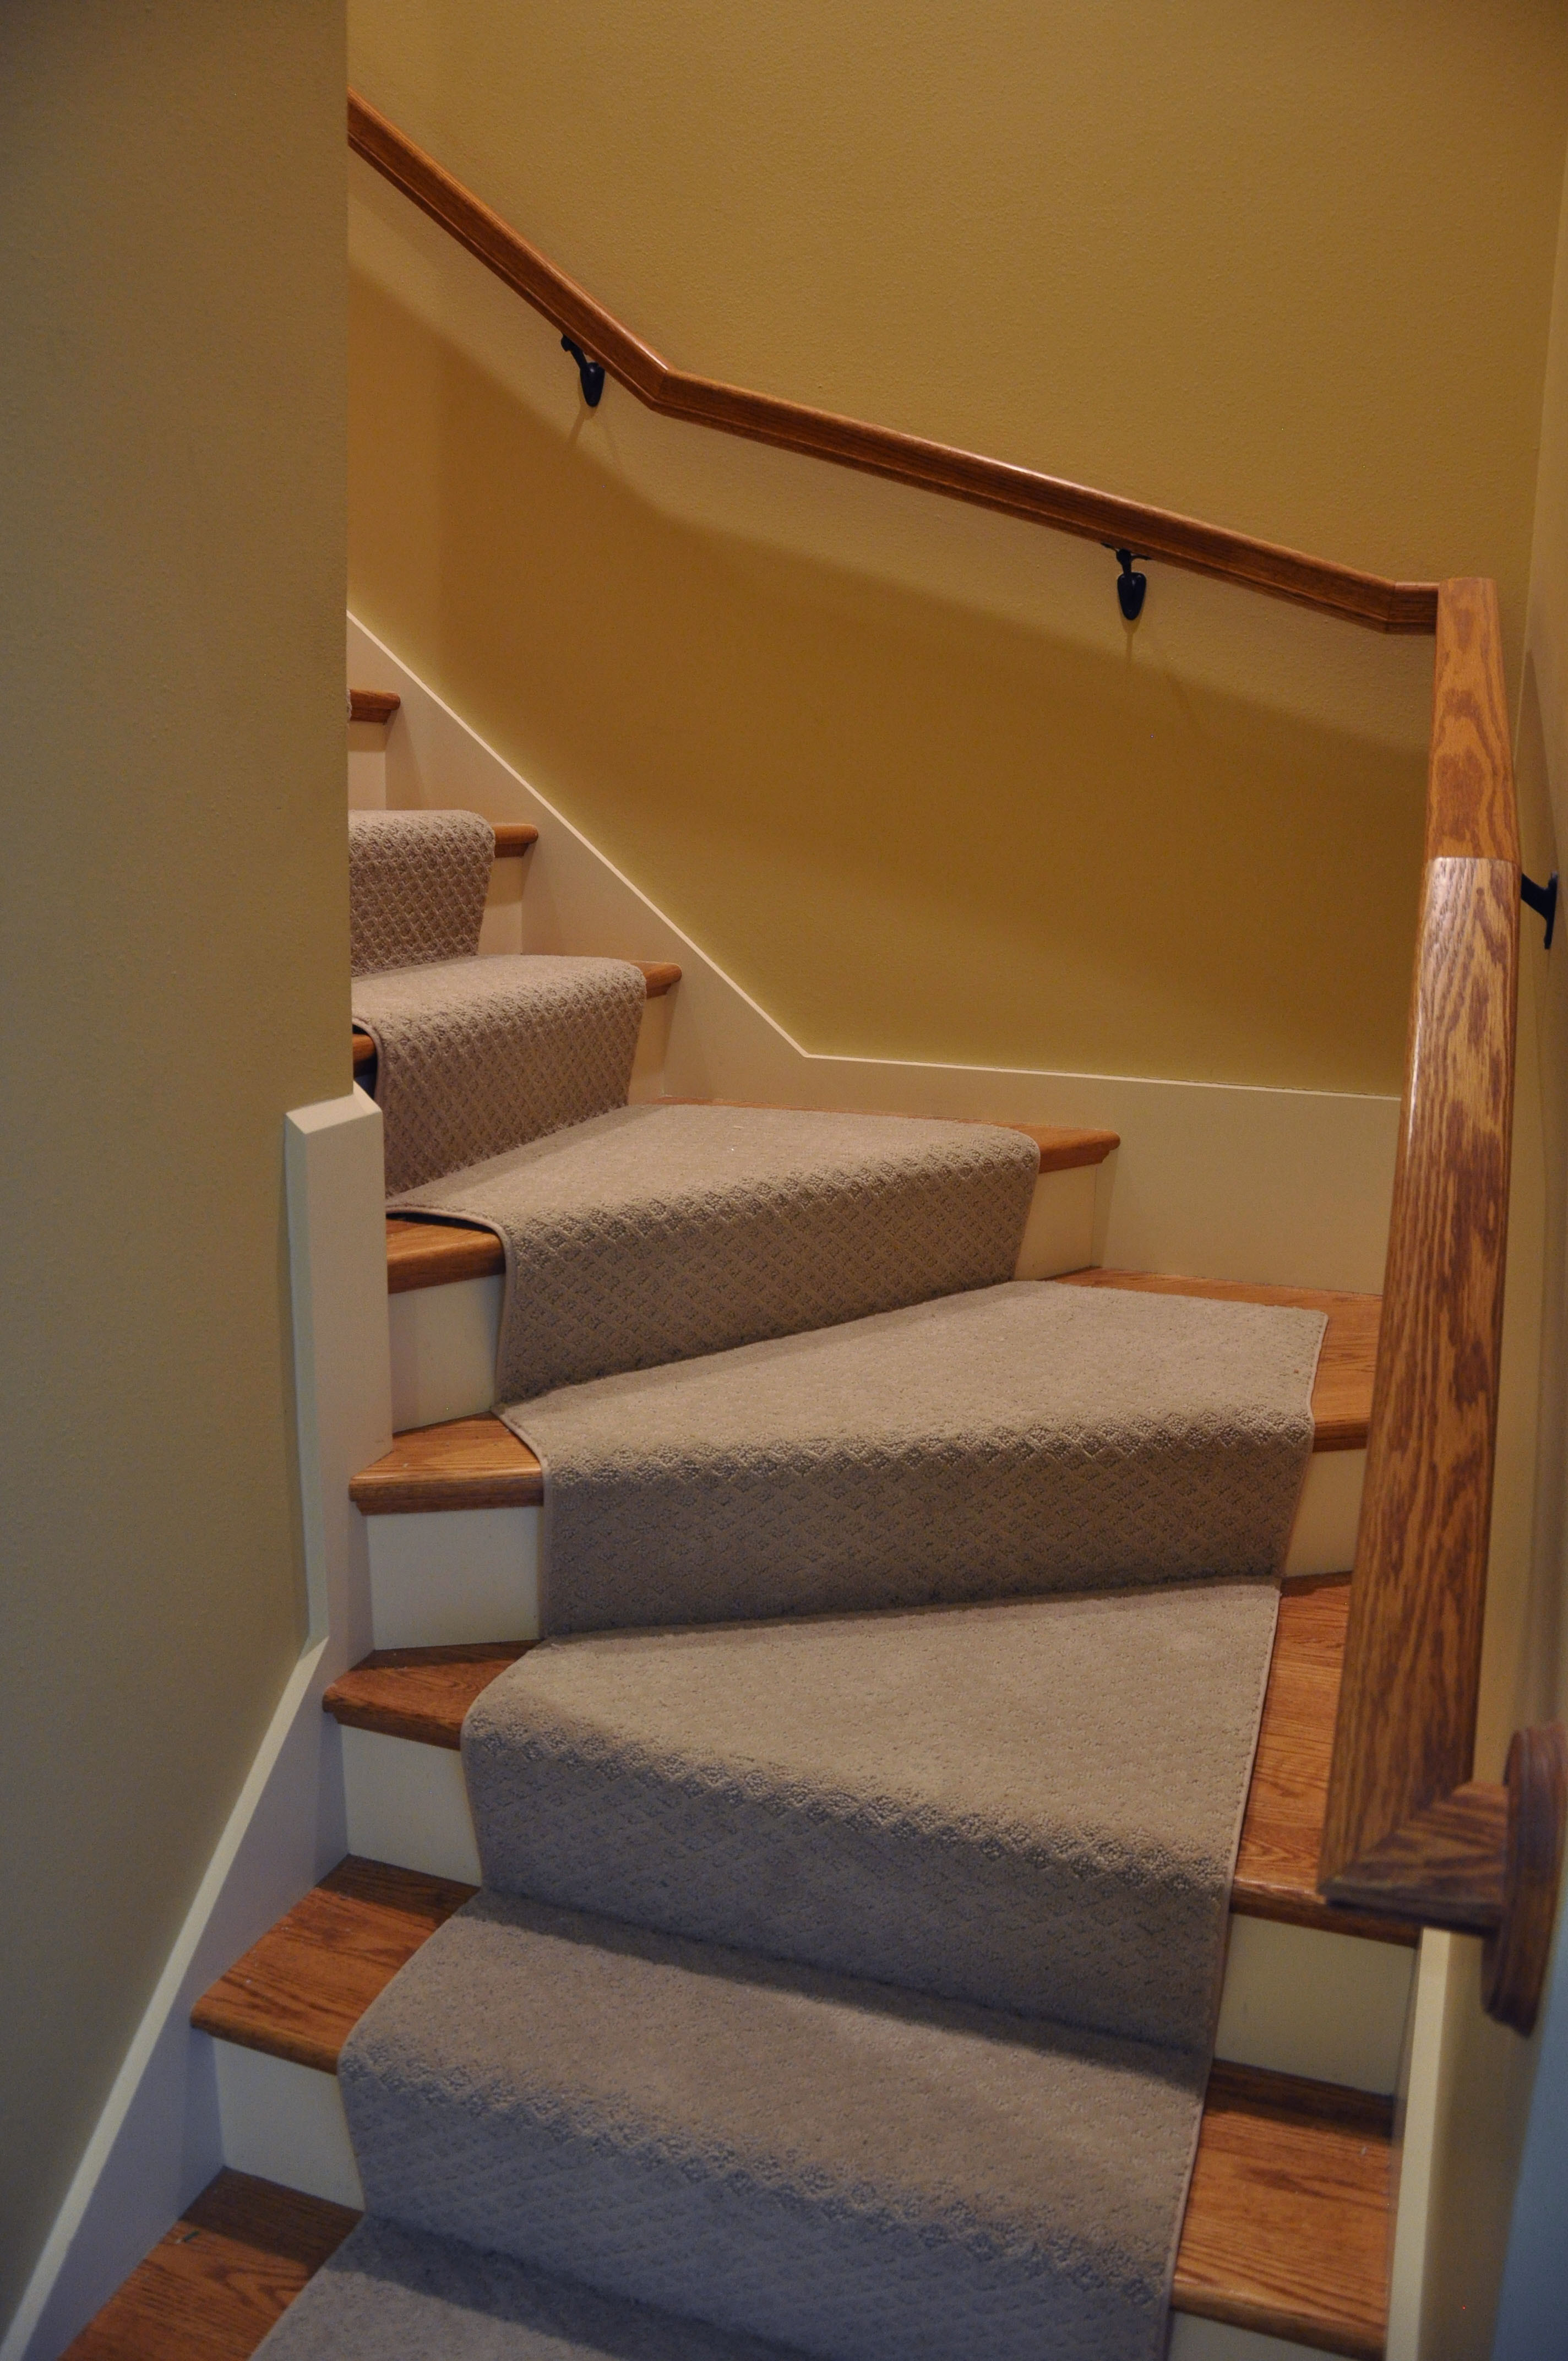 26 Best Hardwood Floor Meets Carpeted Stairs 2021 free download hardwood floor meets carpeted stairs of hardwood stair treads staircasing installation milwaukee wi intended for click image to enlarge